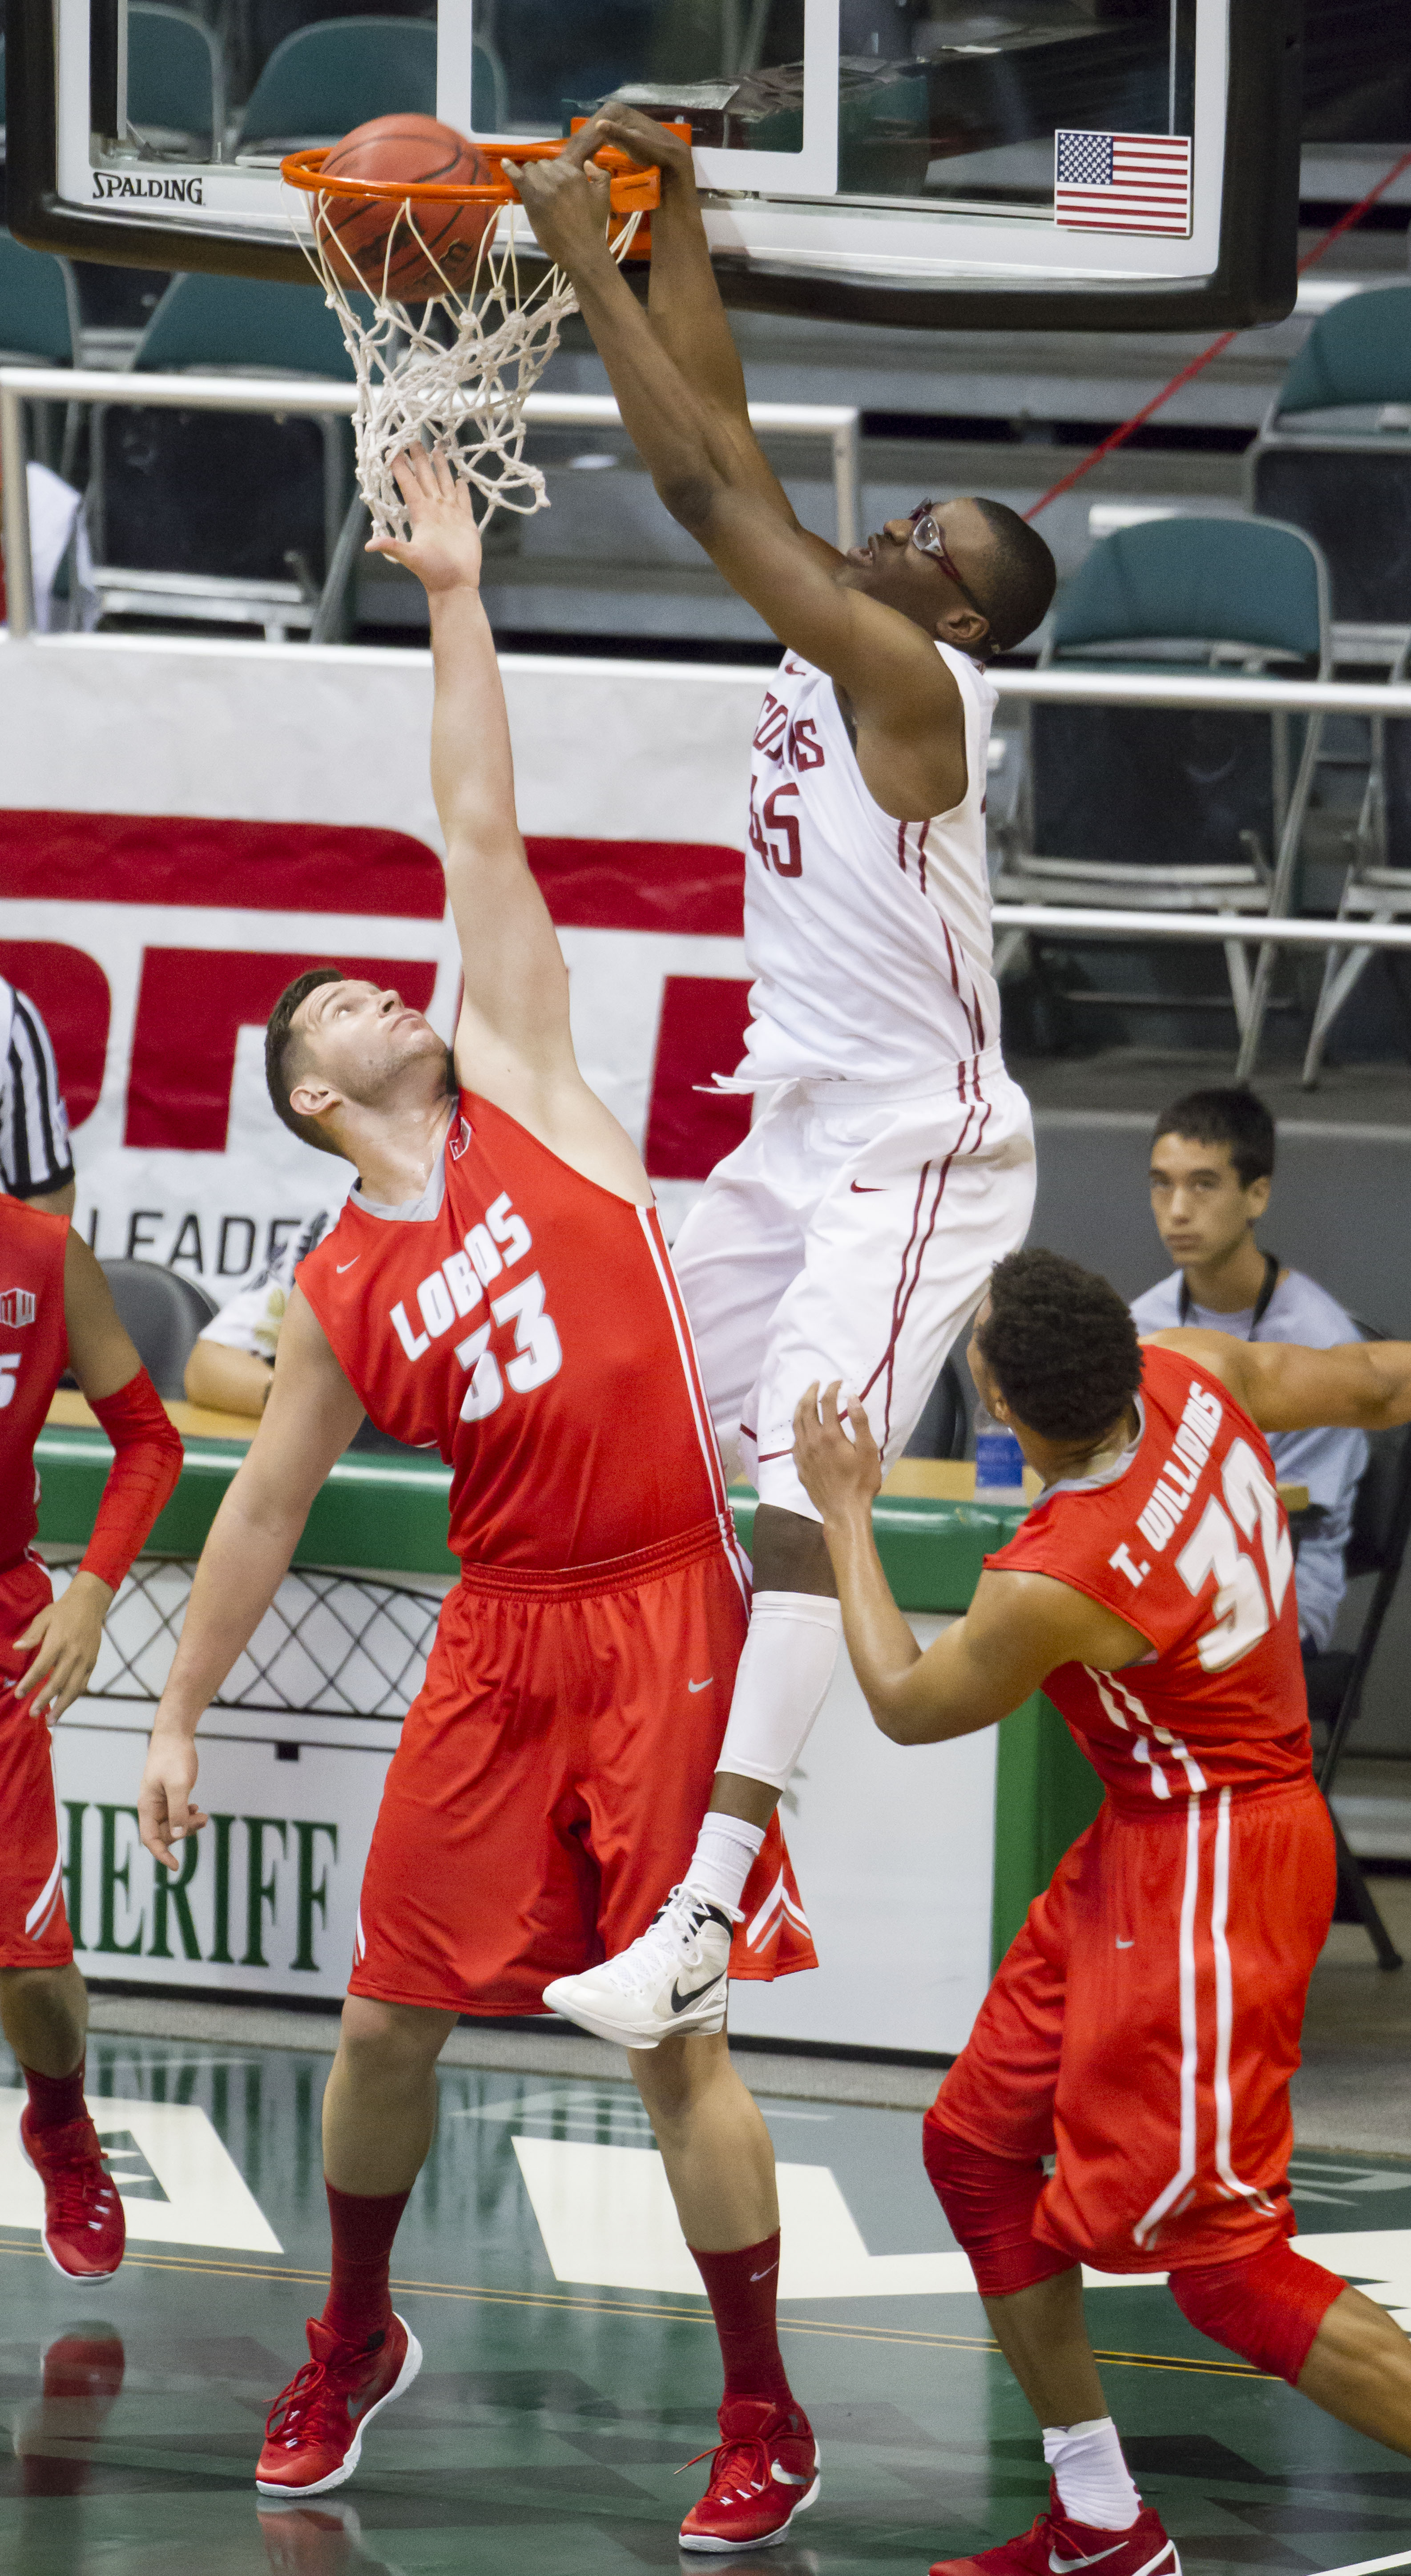 Washington State center Valentine Izundu, right, dunks over New Mexico center Nikola Scekic (33) as forward Tim Williams (32) looks on in the first half of an NCAA college basketball game at the Diamond Head Classic, Friday, Dec. 25, 2015, in Honolulu. (A